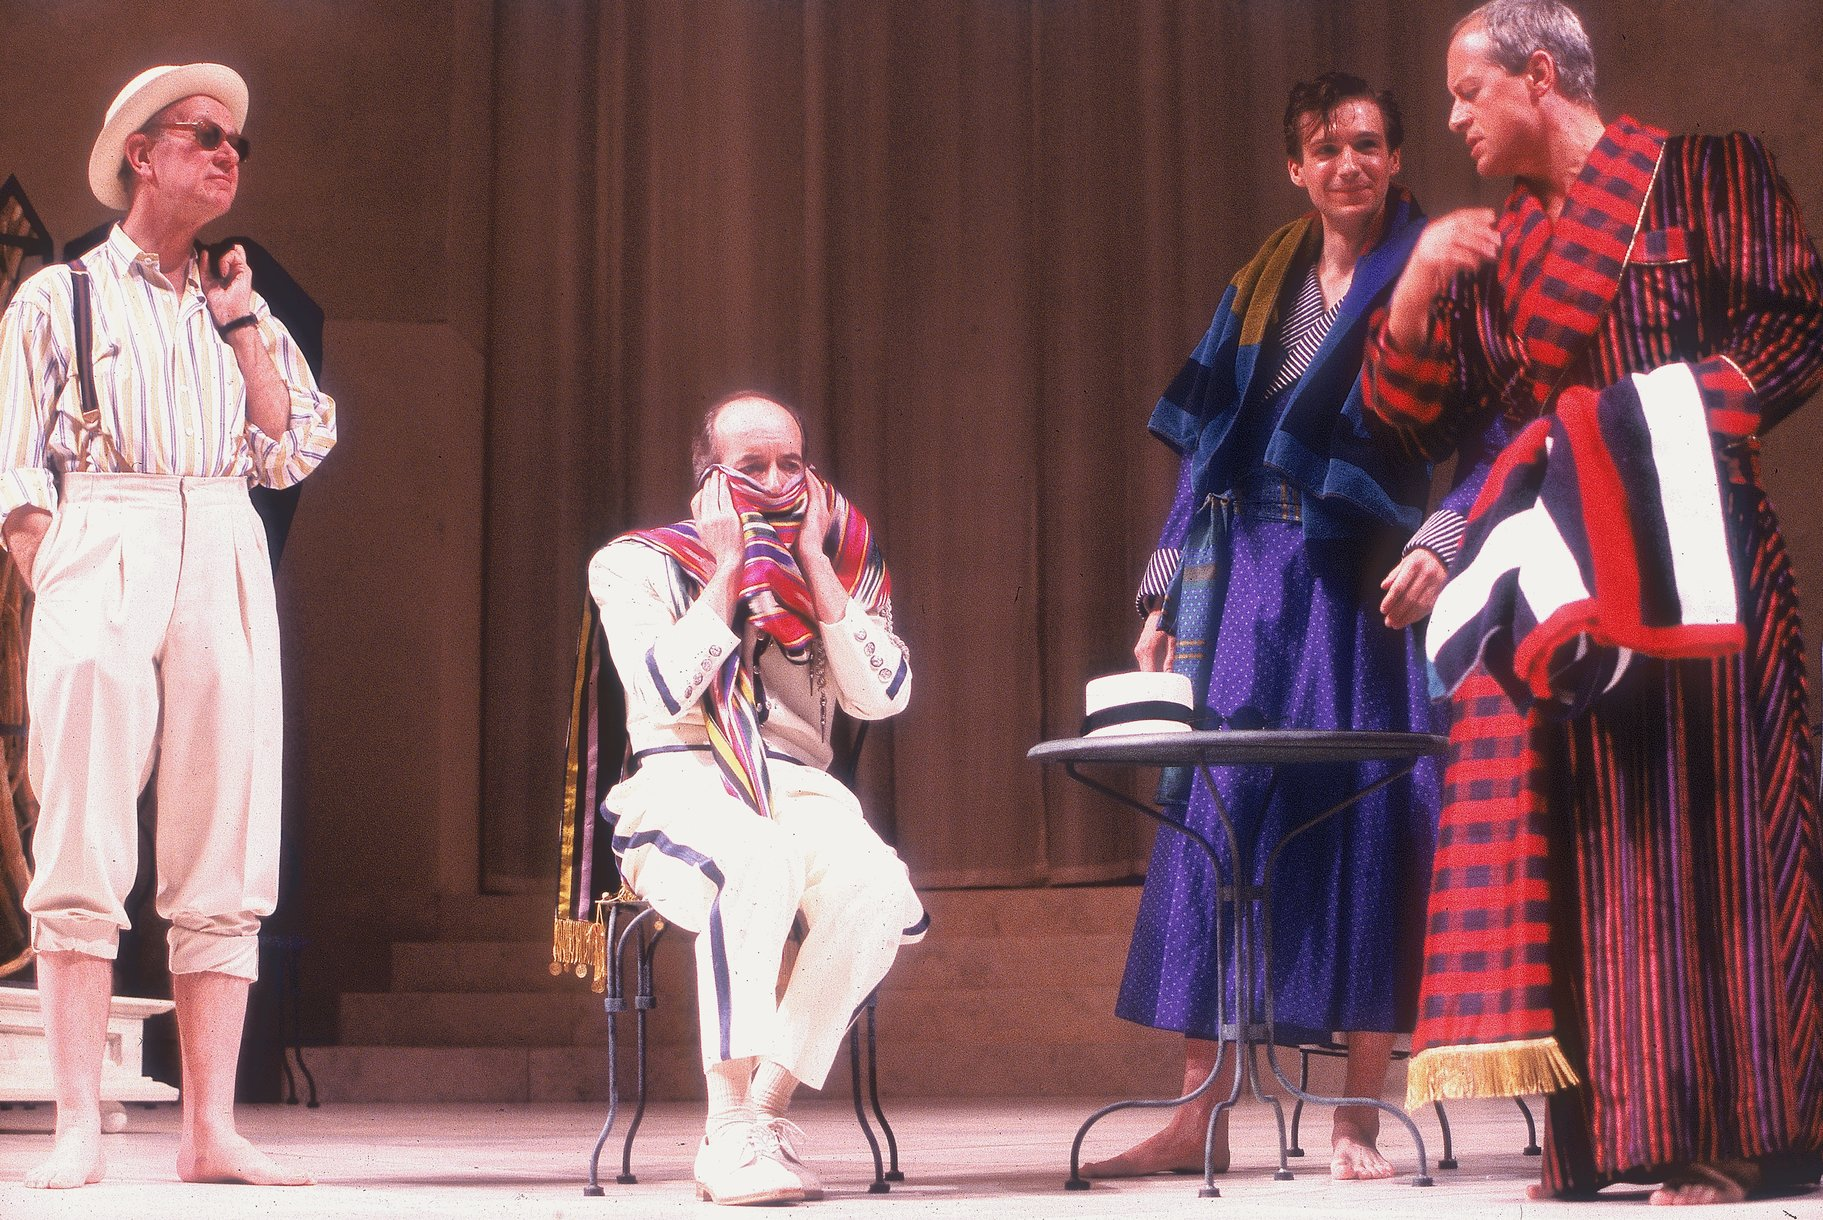 Three men in casual clothes and bathrobes talk around one sat on a chair with a scarf around his face.